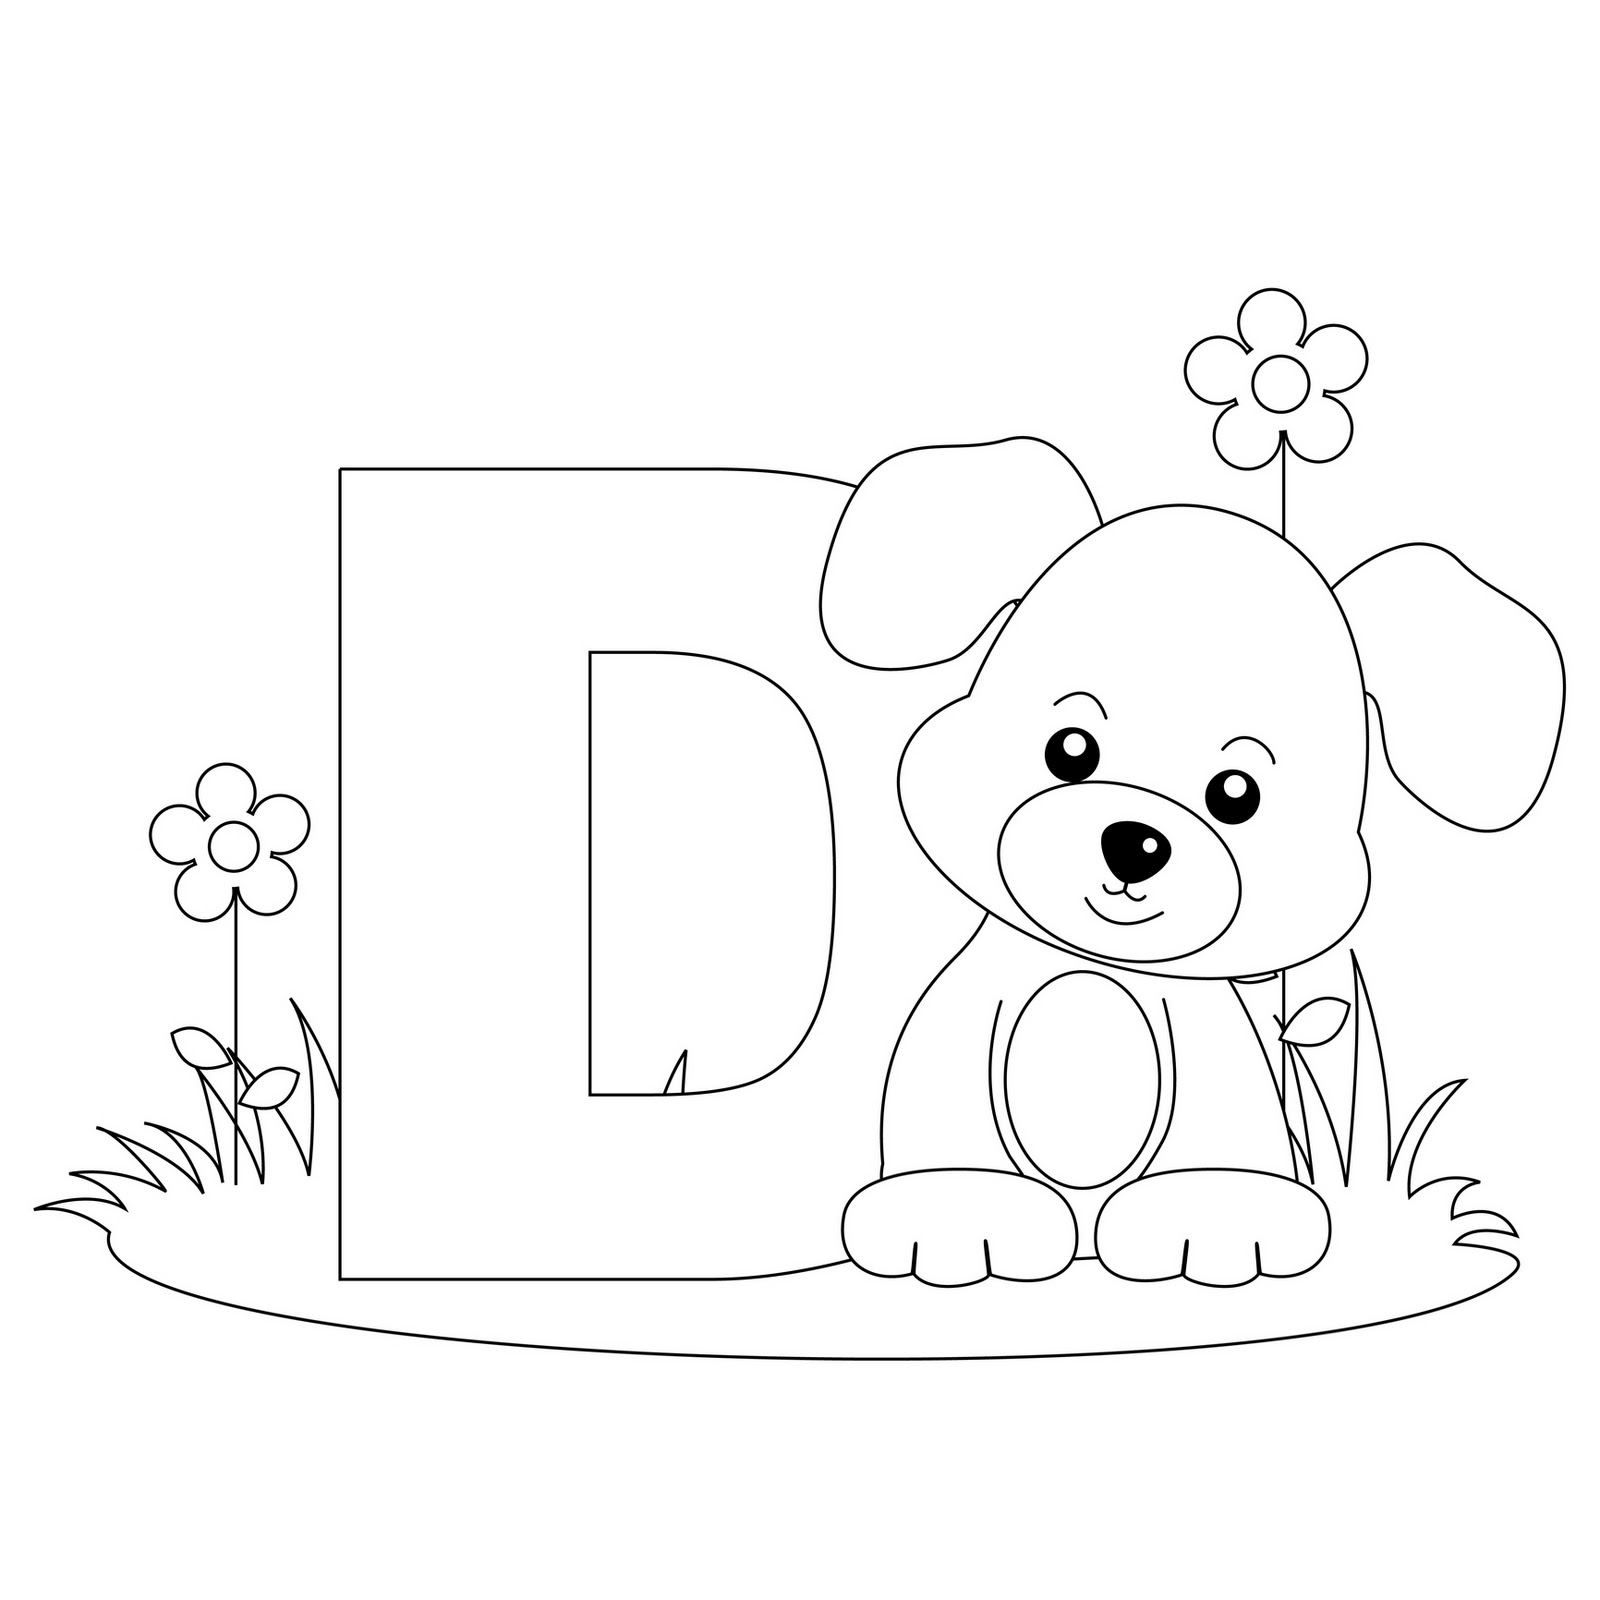 Coloring Pages For Kids Letter D Coloring Pages For Kids